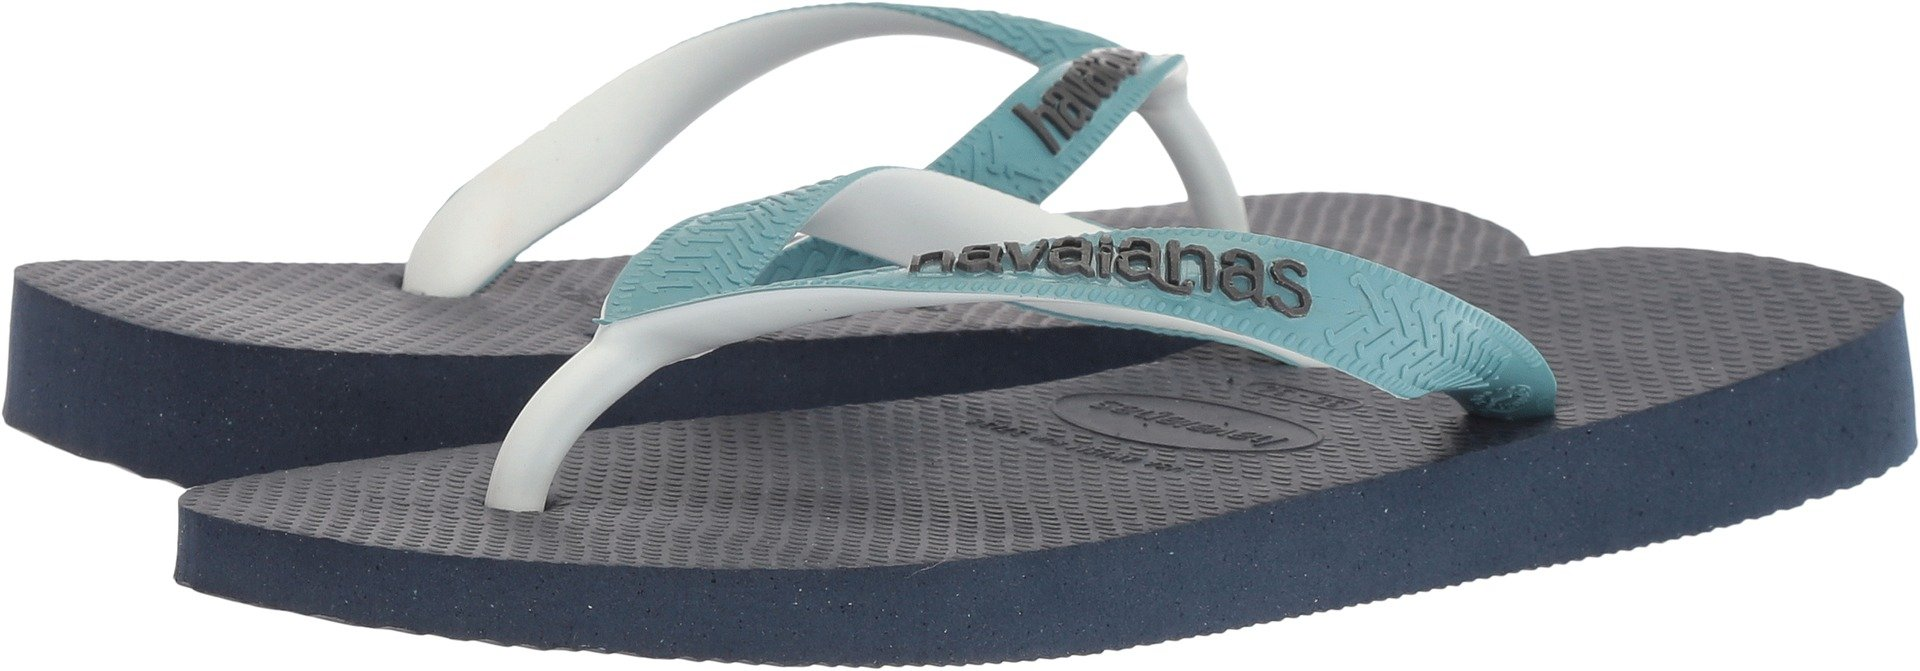 Havaianas Women's Flip-Flop Sandals, Top Mix ,Navy Blue/Mineral Blue,37/38 BR (7-8 M US)